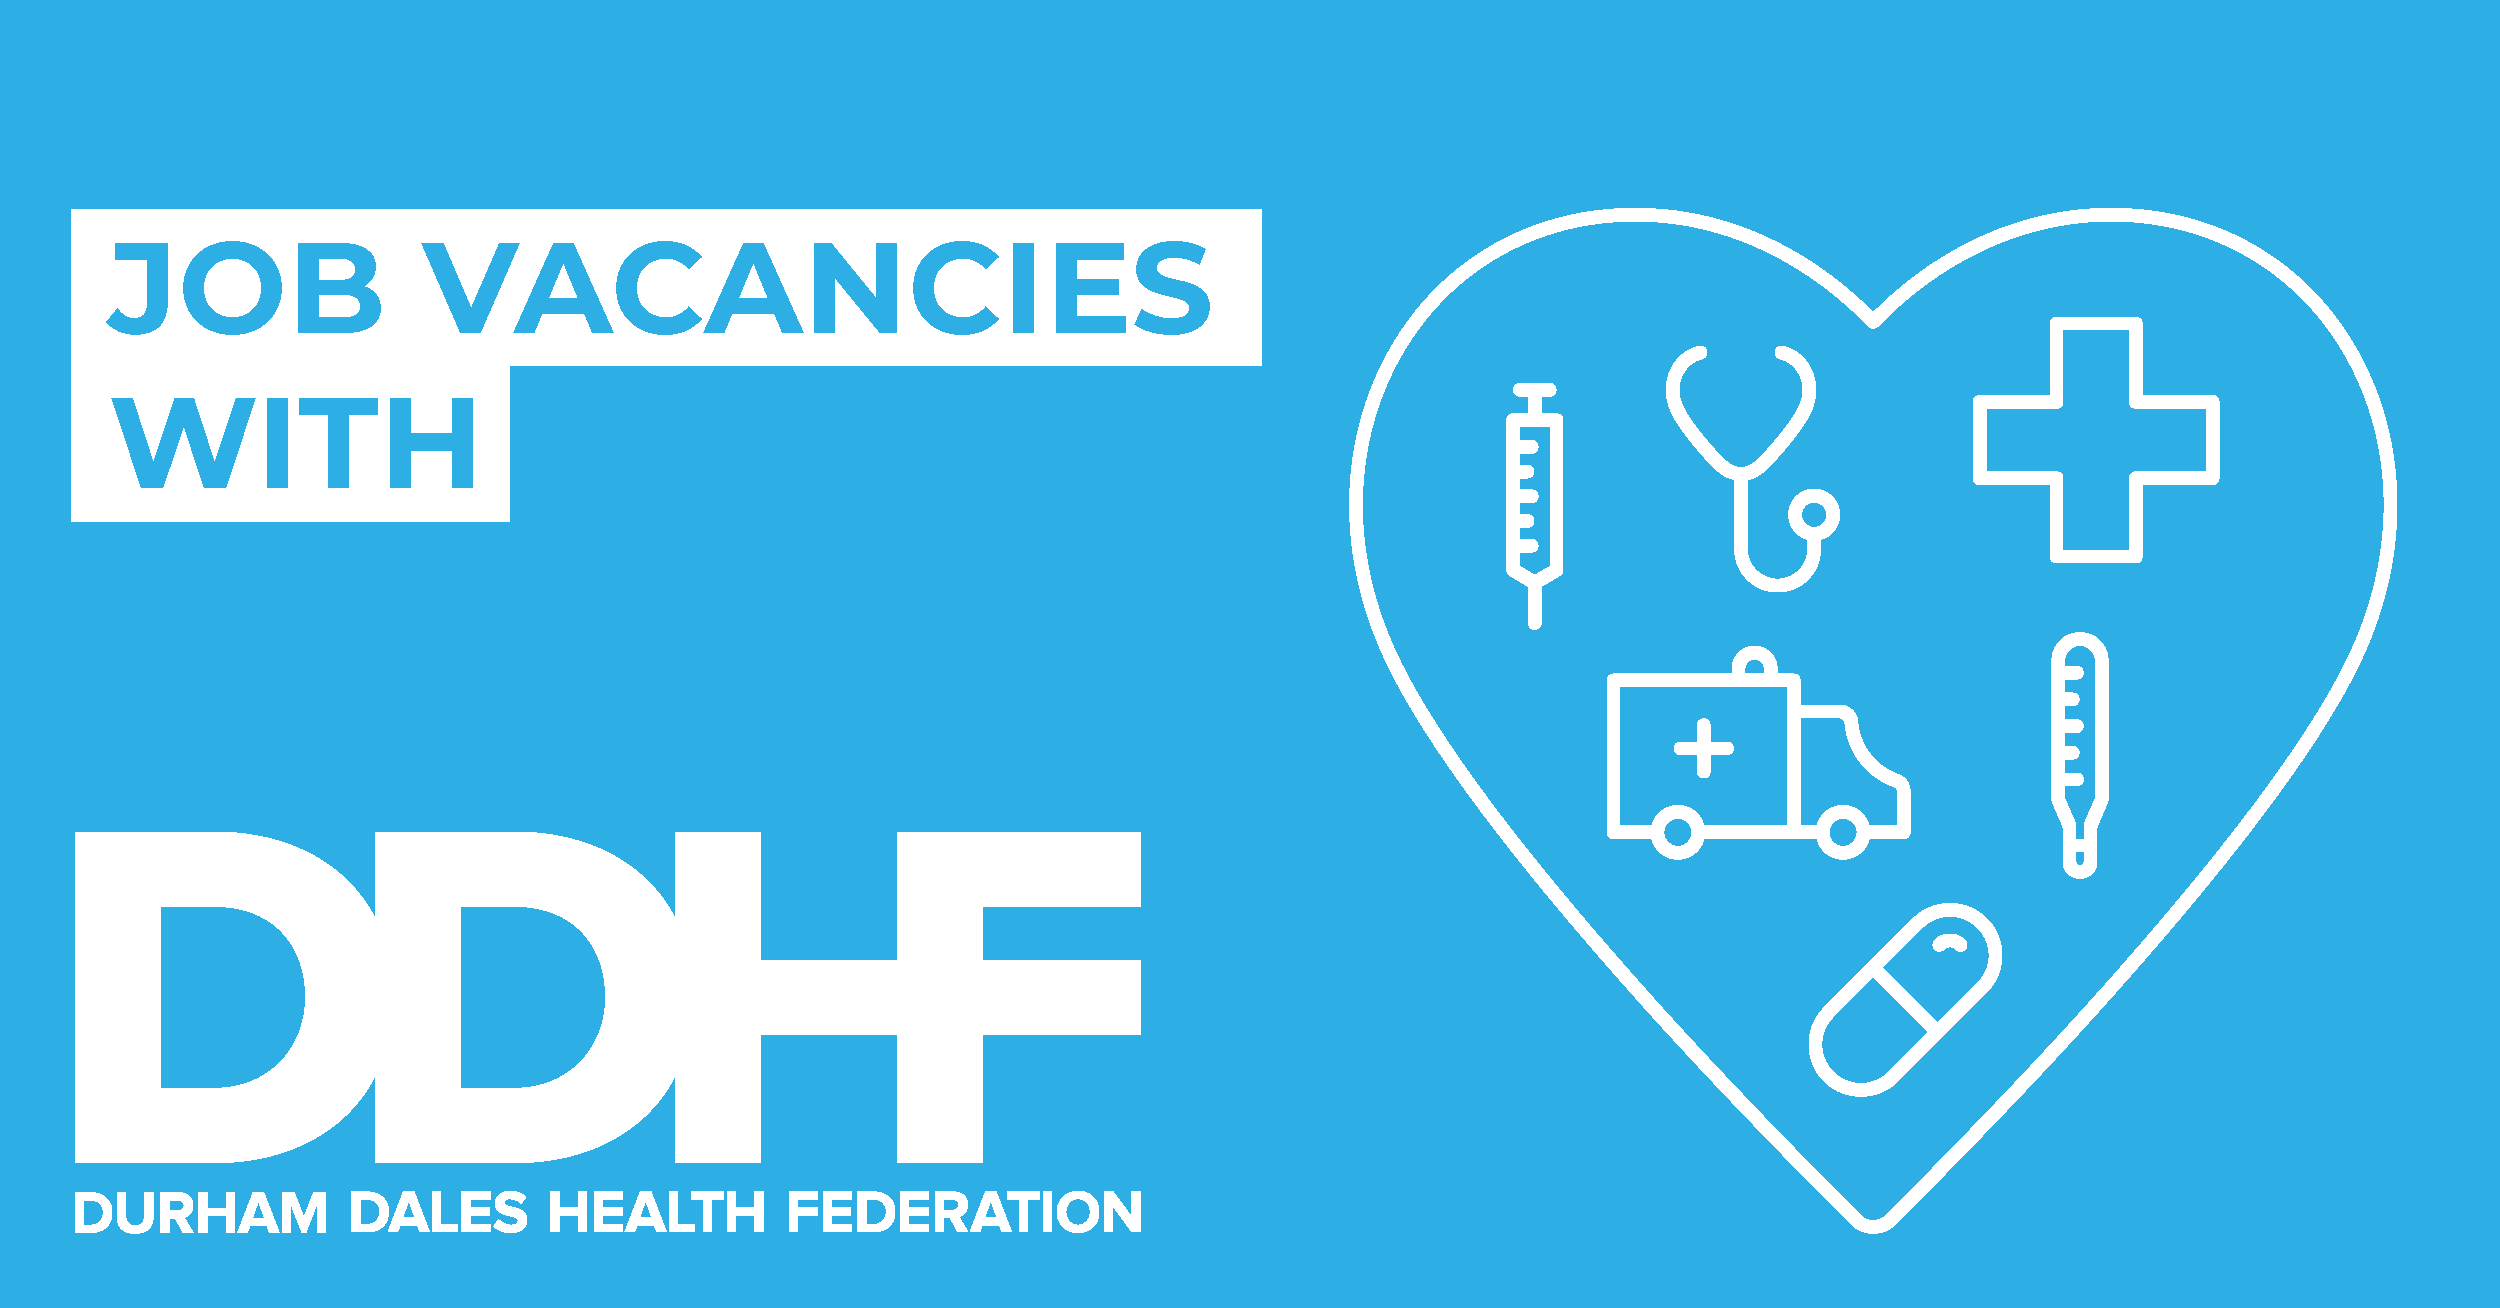 DDHF FB Vacancies